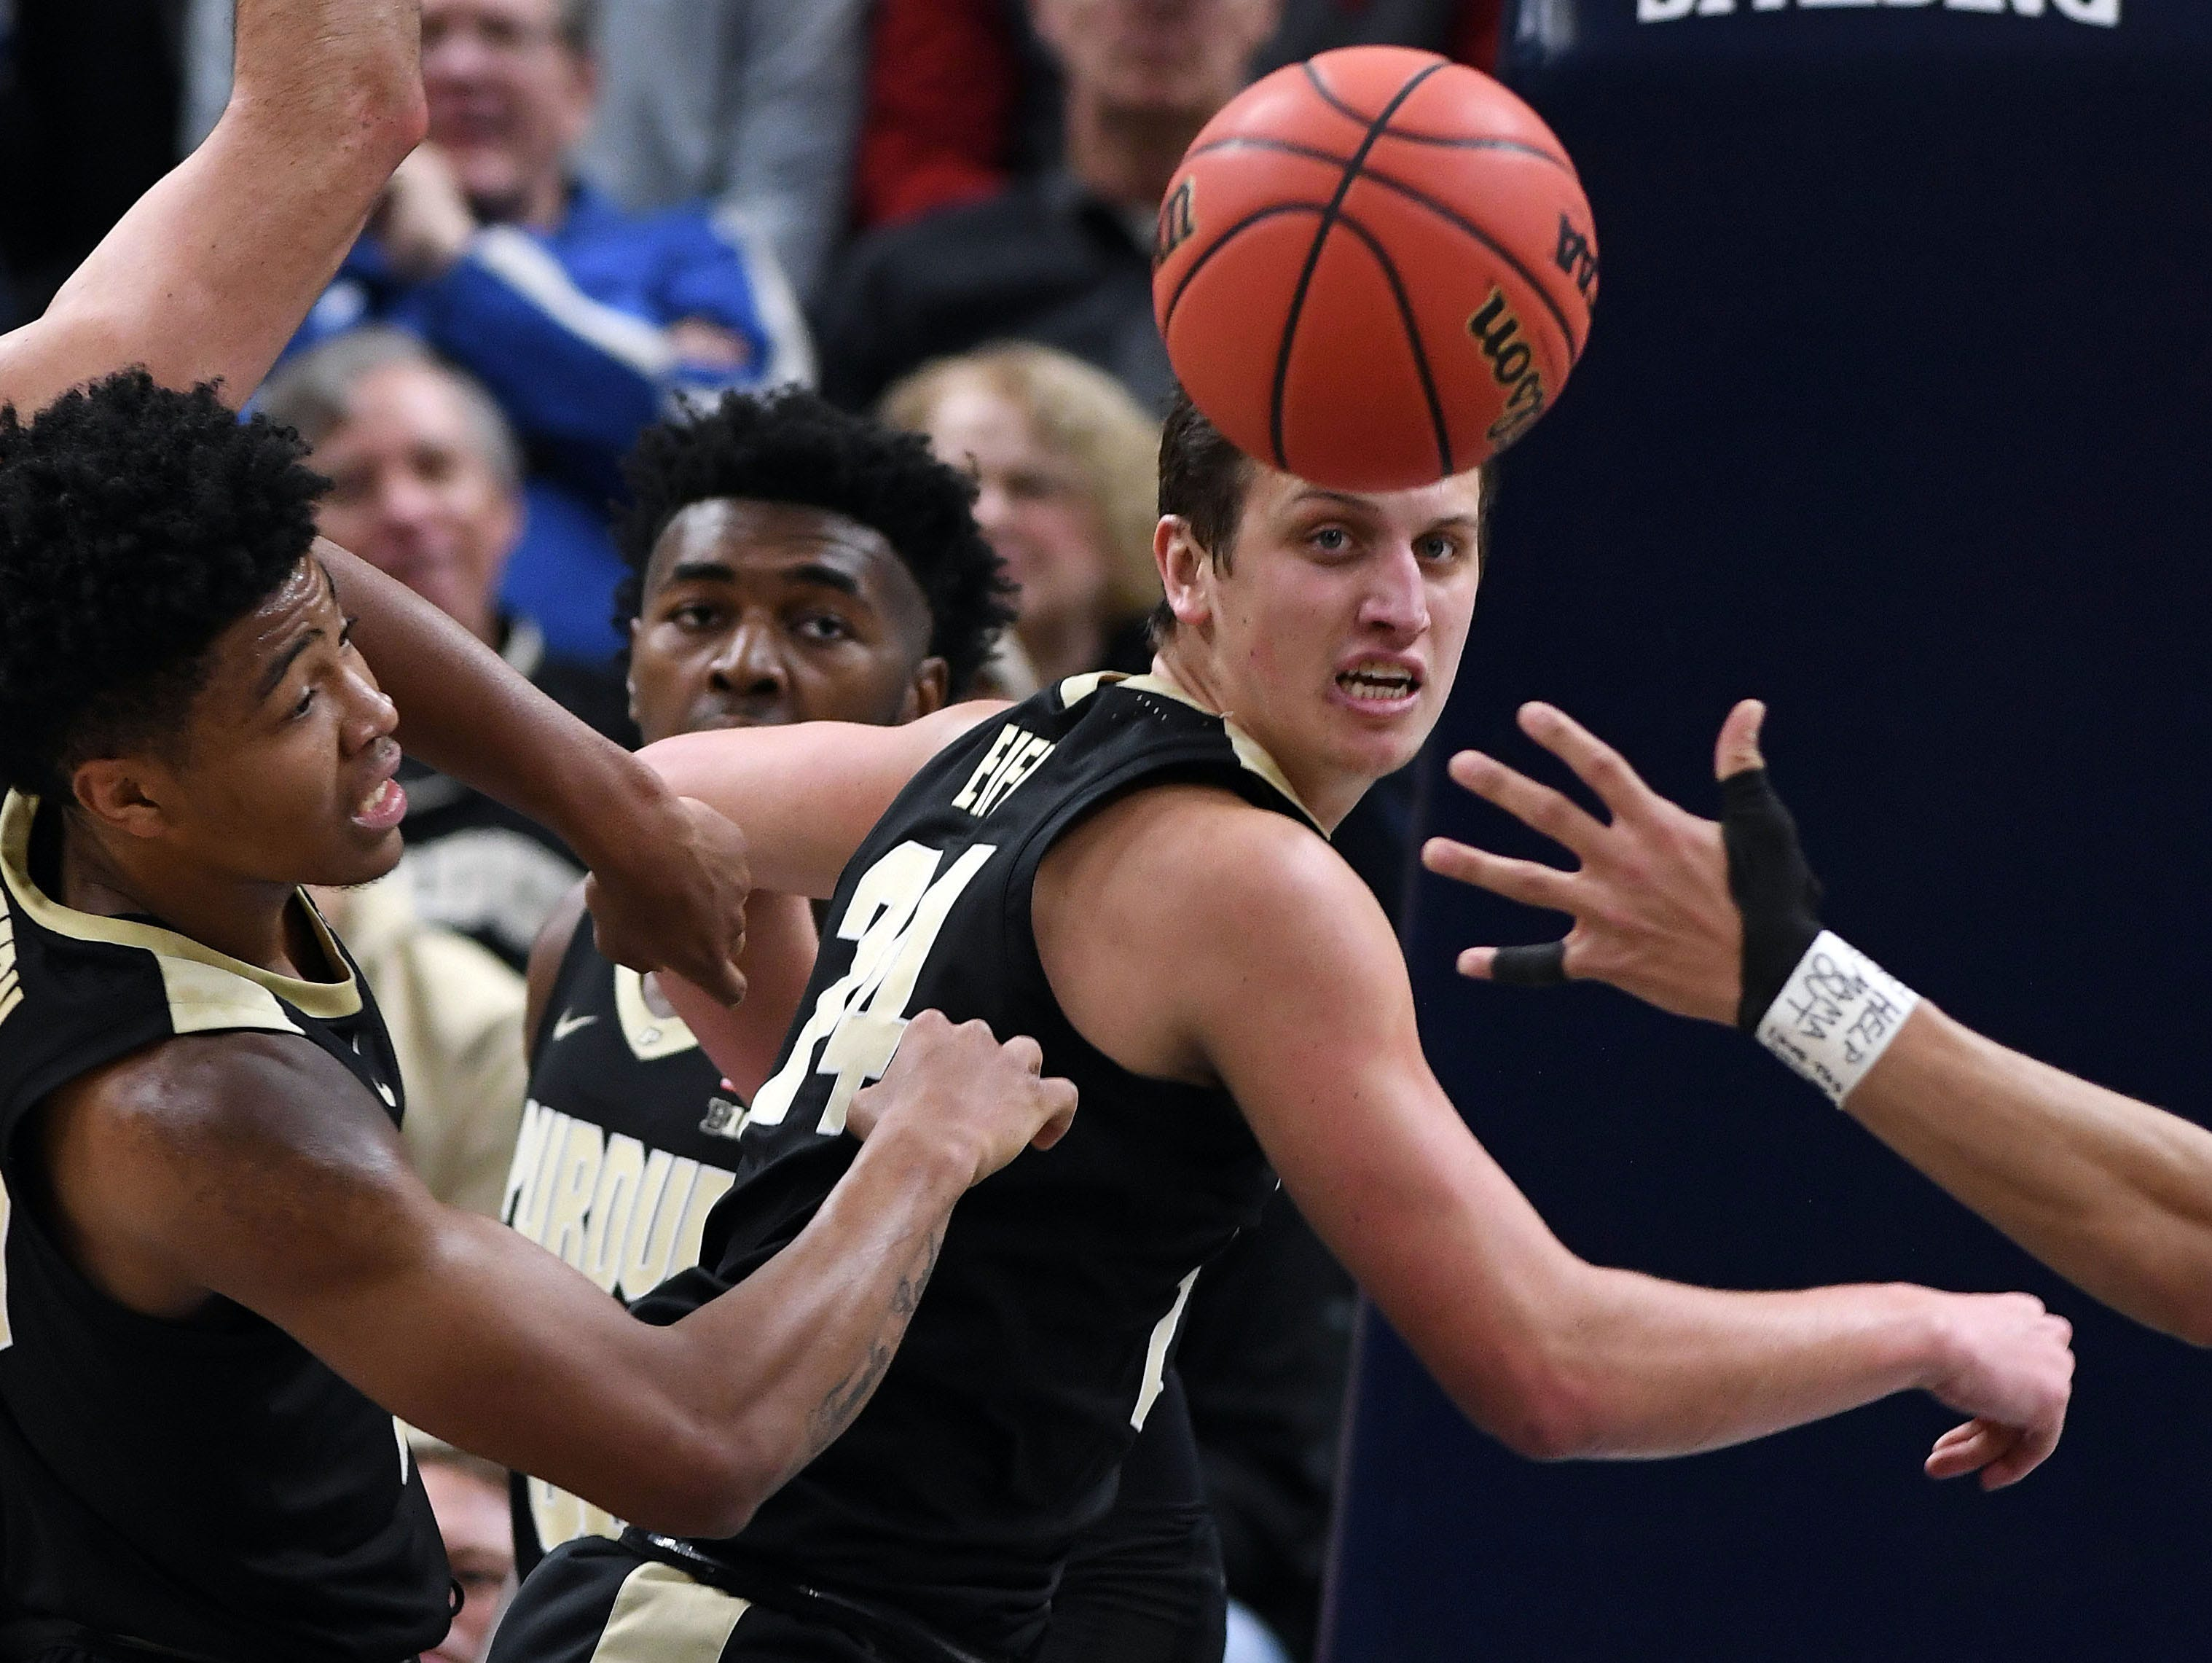 Dec 15, 2018; Indianapolis, IN, USA; Purdue Boilermaker guards Grady Eifert (24) and Nojel Eastern (20) go after a loose ball in the first half against the Notre Dame Fighting Irish at Bankers Life Fieldhouse. Mandatory Credit: Thomas J. Russo-USA TODAY Sports